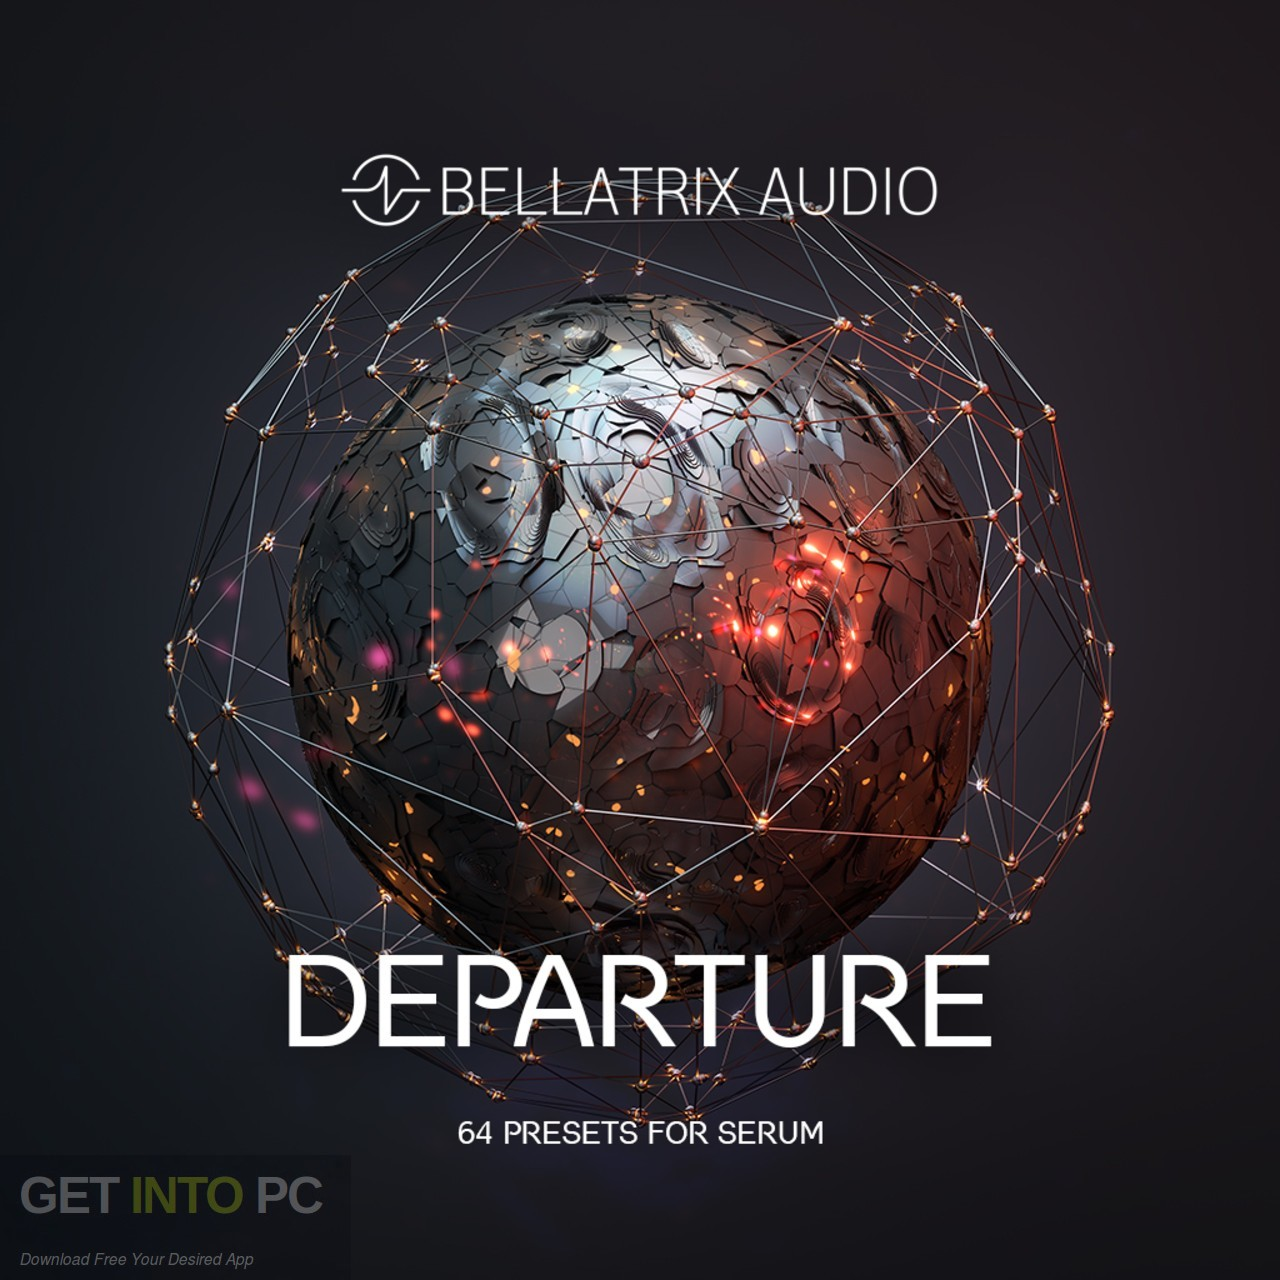 Bellatrix Audio - Departure (SERUM) Free Download